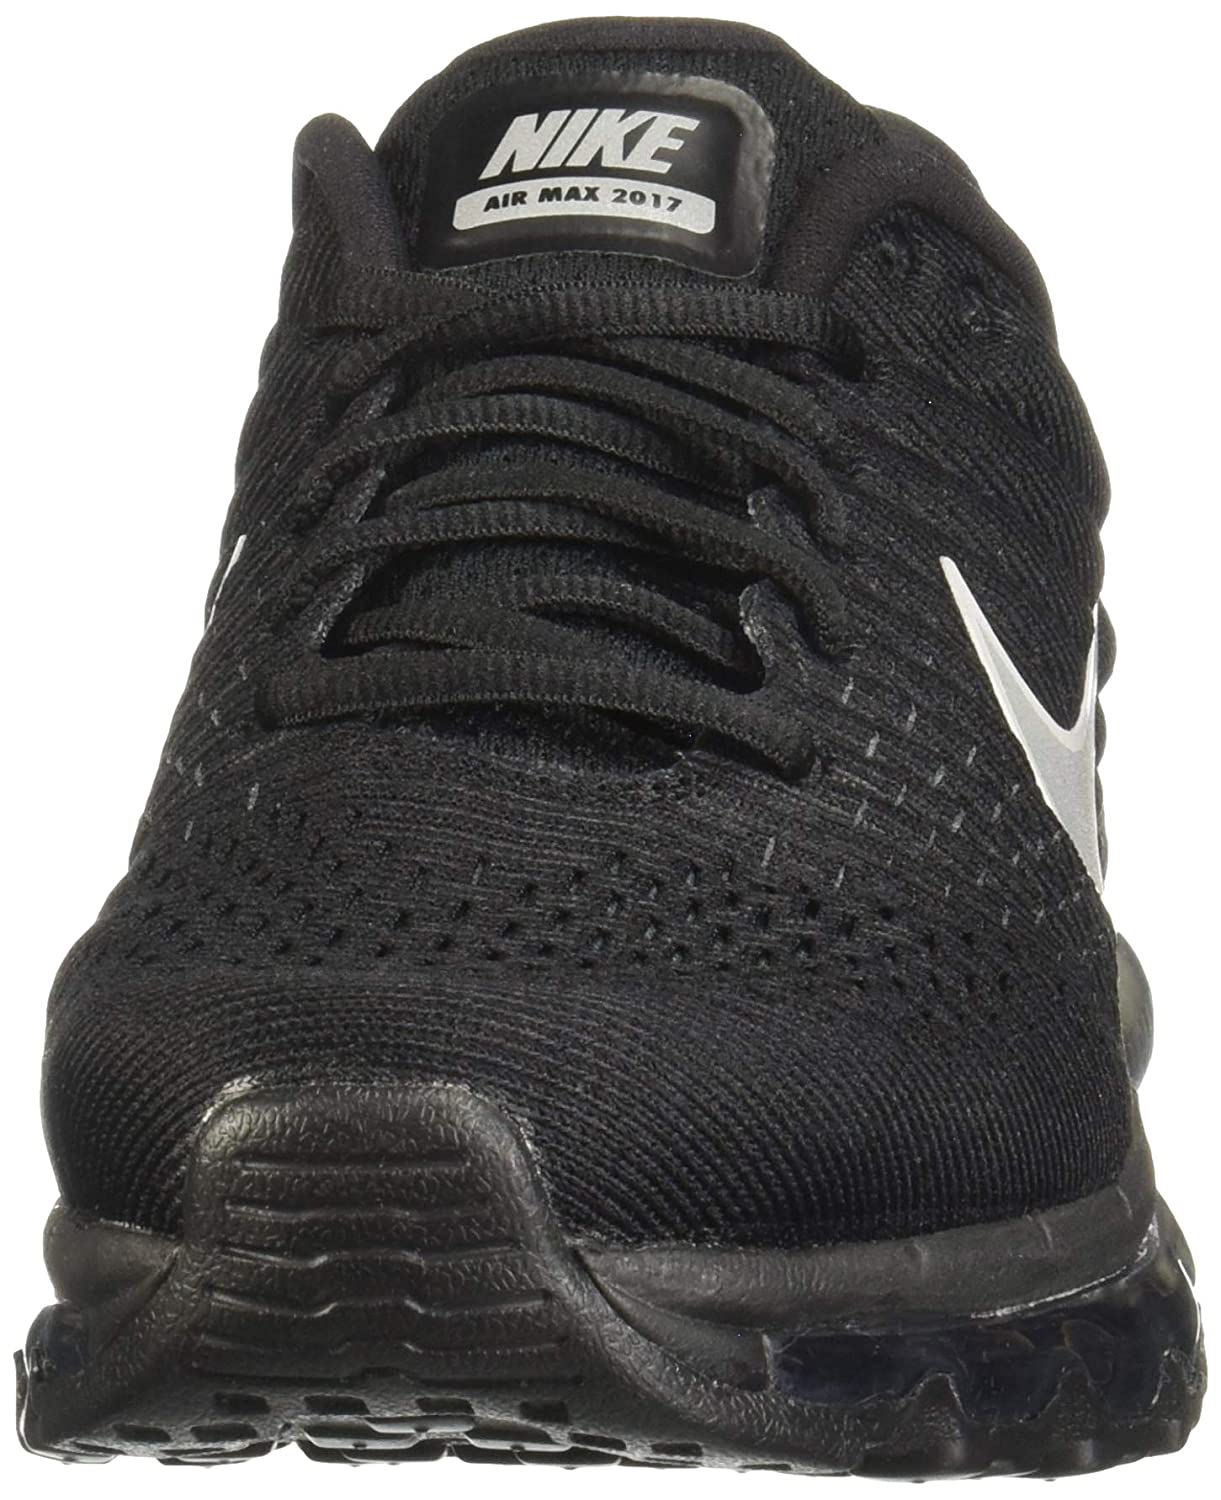 on sale 3ff5e 0dc86 Amazon.com   Nike Womens Air Max 2017 Running Shoes Black White Anthracite  849560-001 Size 10   Road Running